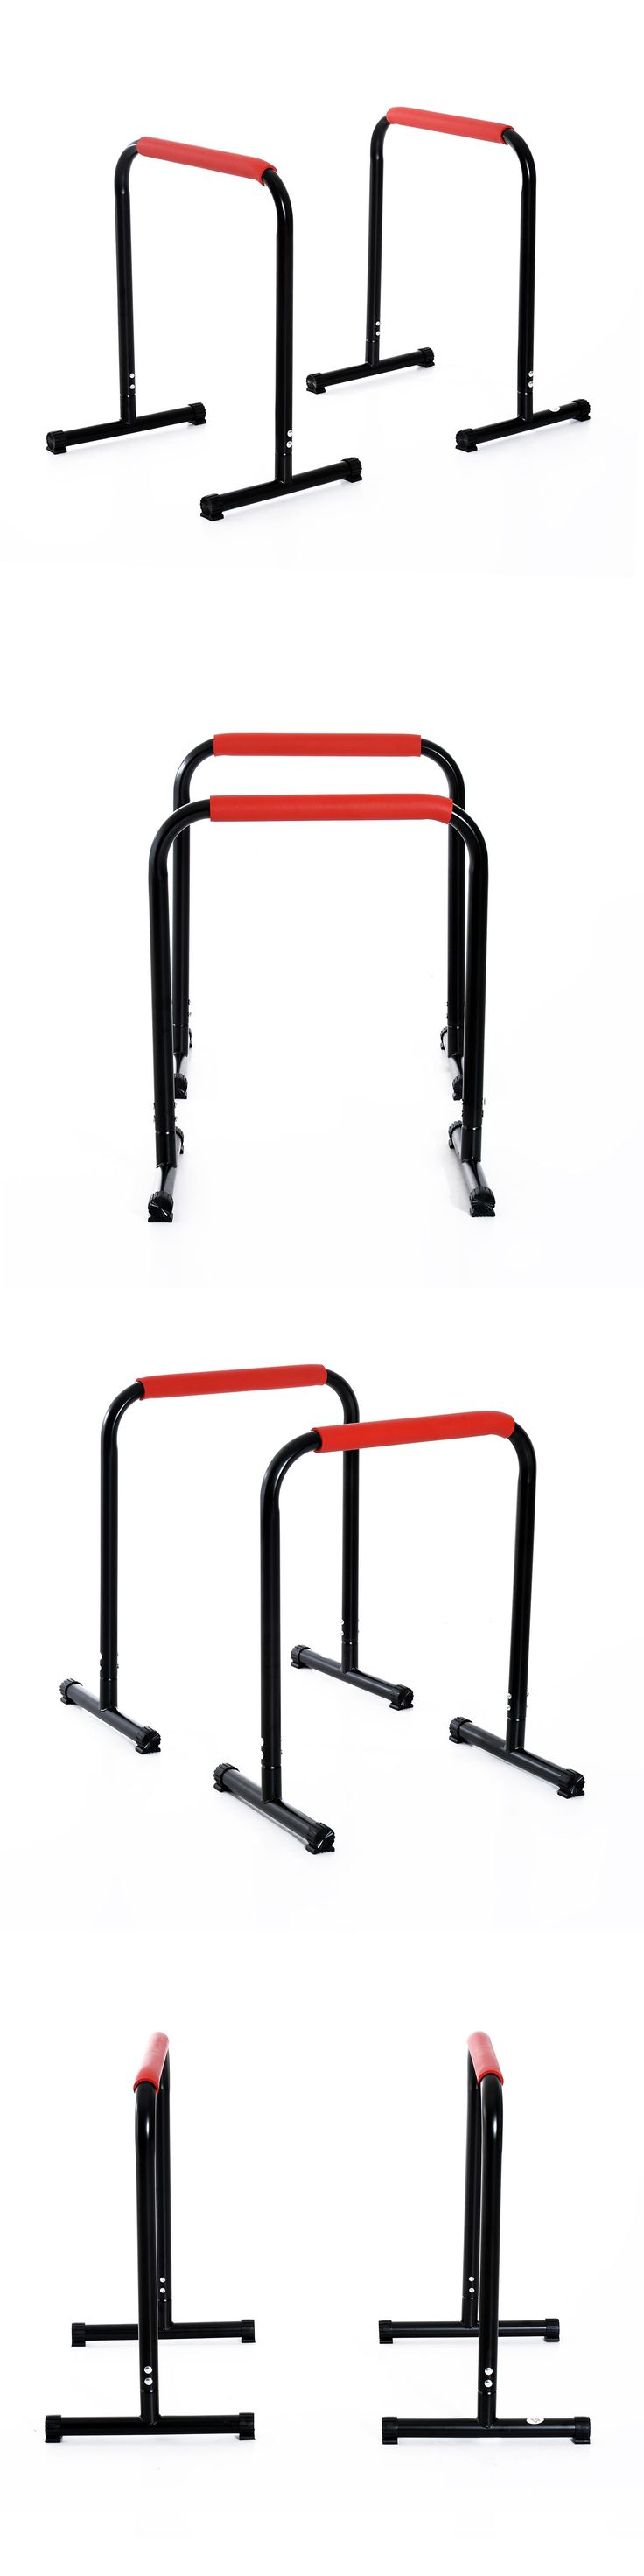 Push Up Stands 158925: Handle Push Up Stands Pull Gym Bar Workout Training Exercise Home Fitness New -> BUY IT NOW ONLY: $46.99 on eBay!